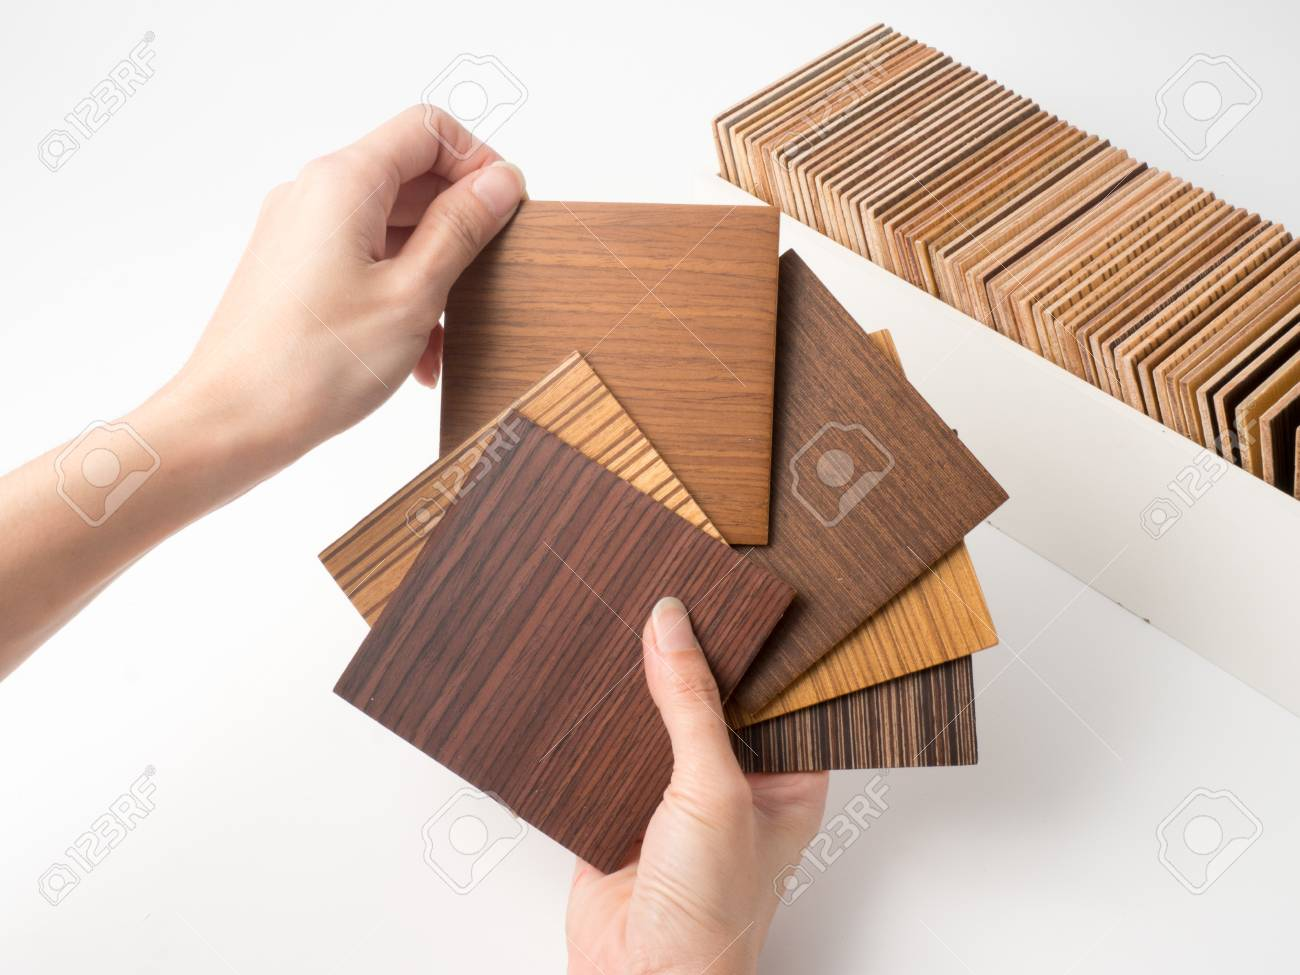 Samples Of Veneer Wood On White Background. Interior Design Select Material  For Idea.Hand